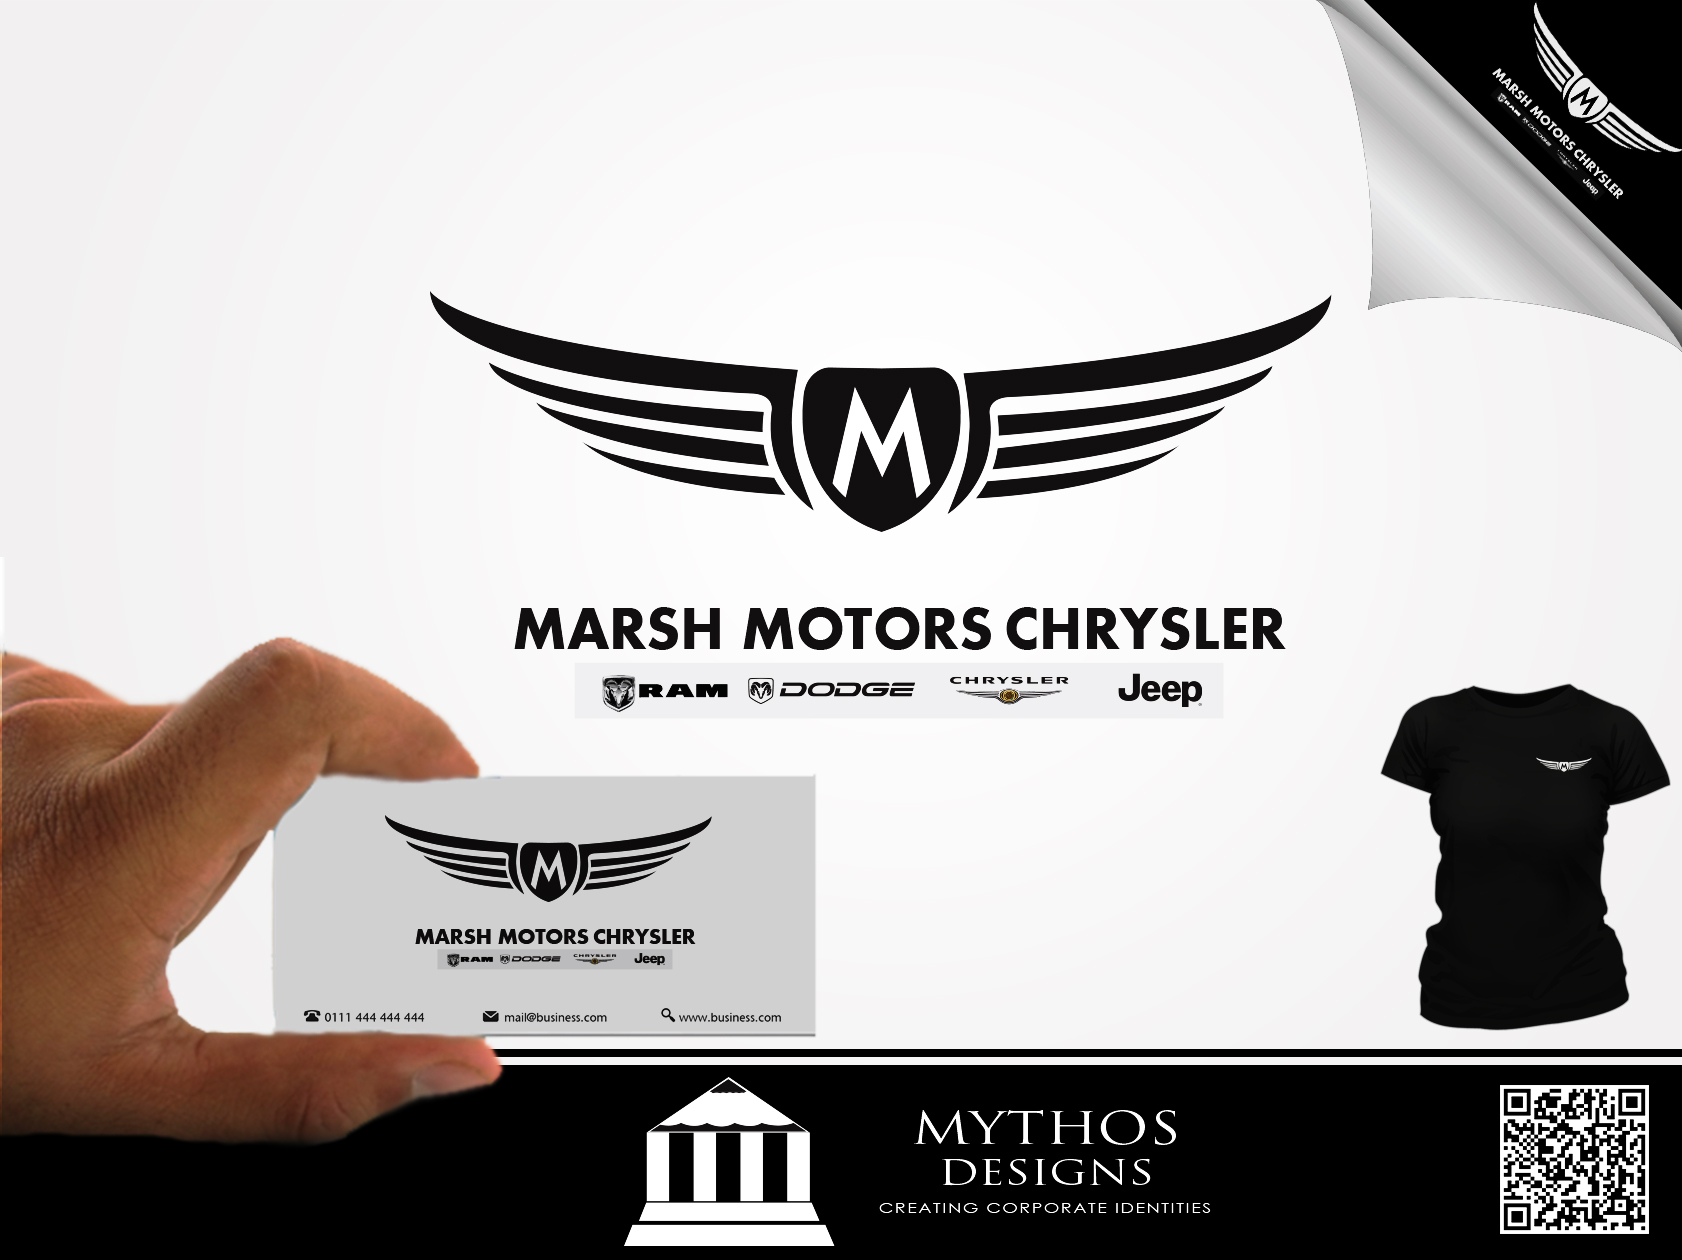 Logo Design by Mythos Designs - Entry No. 45 in the Logo Design Contest Marsh Motors Chrysler Logo Design.